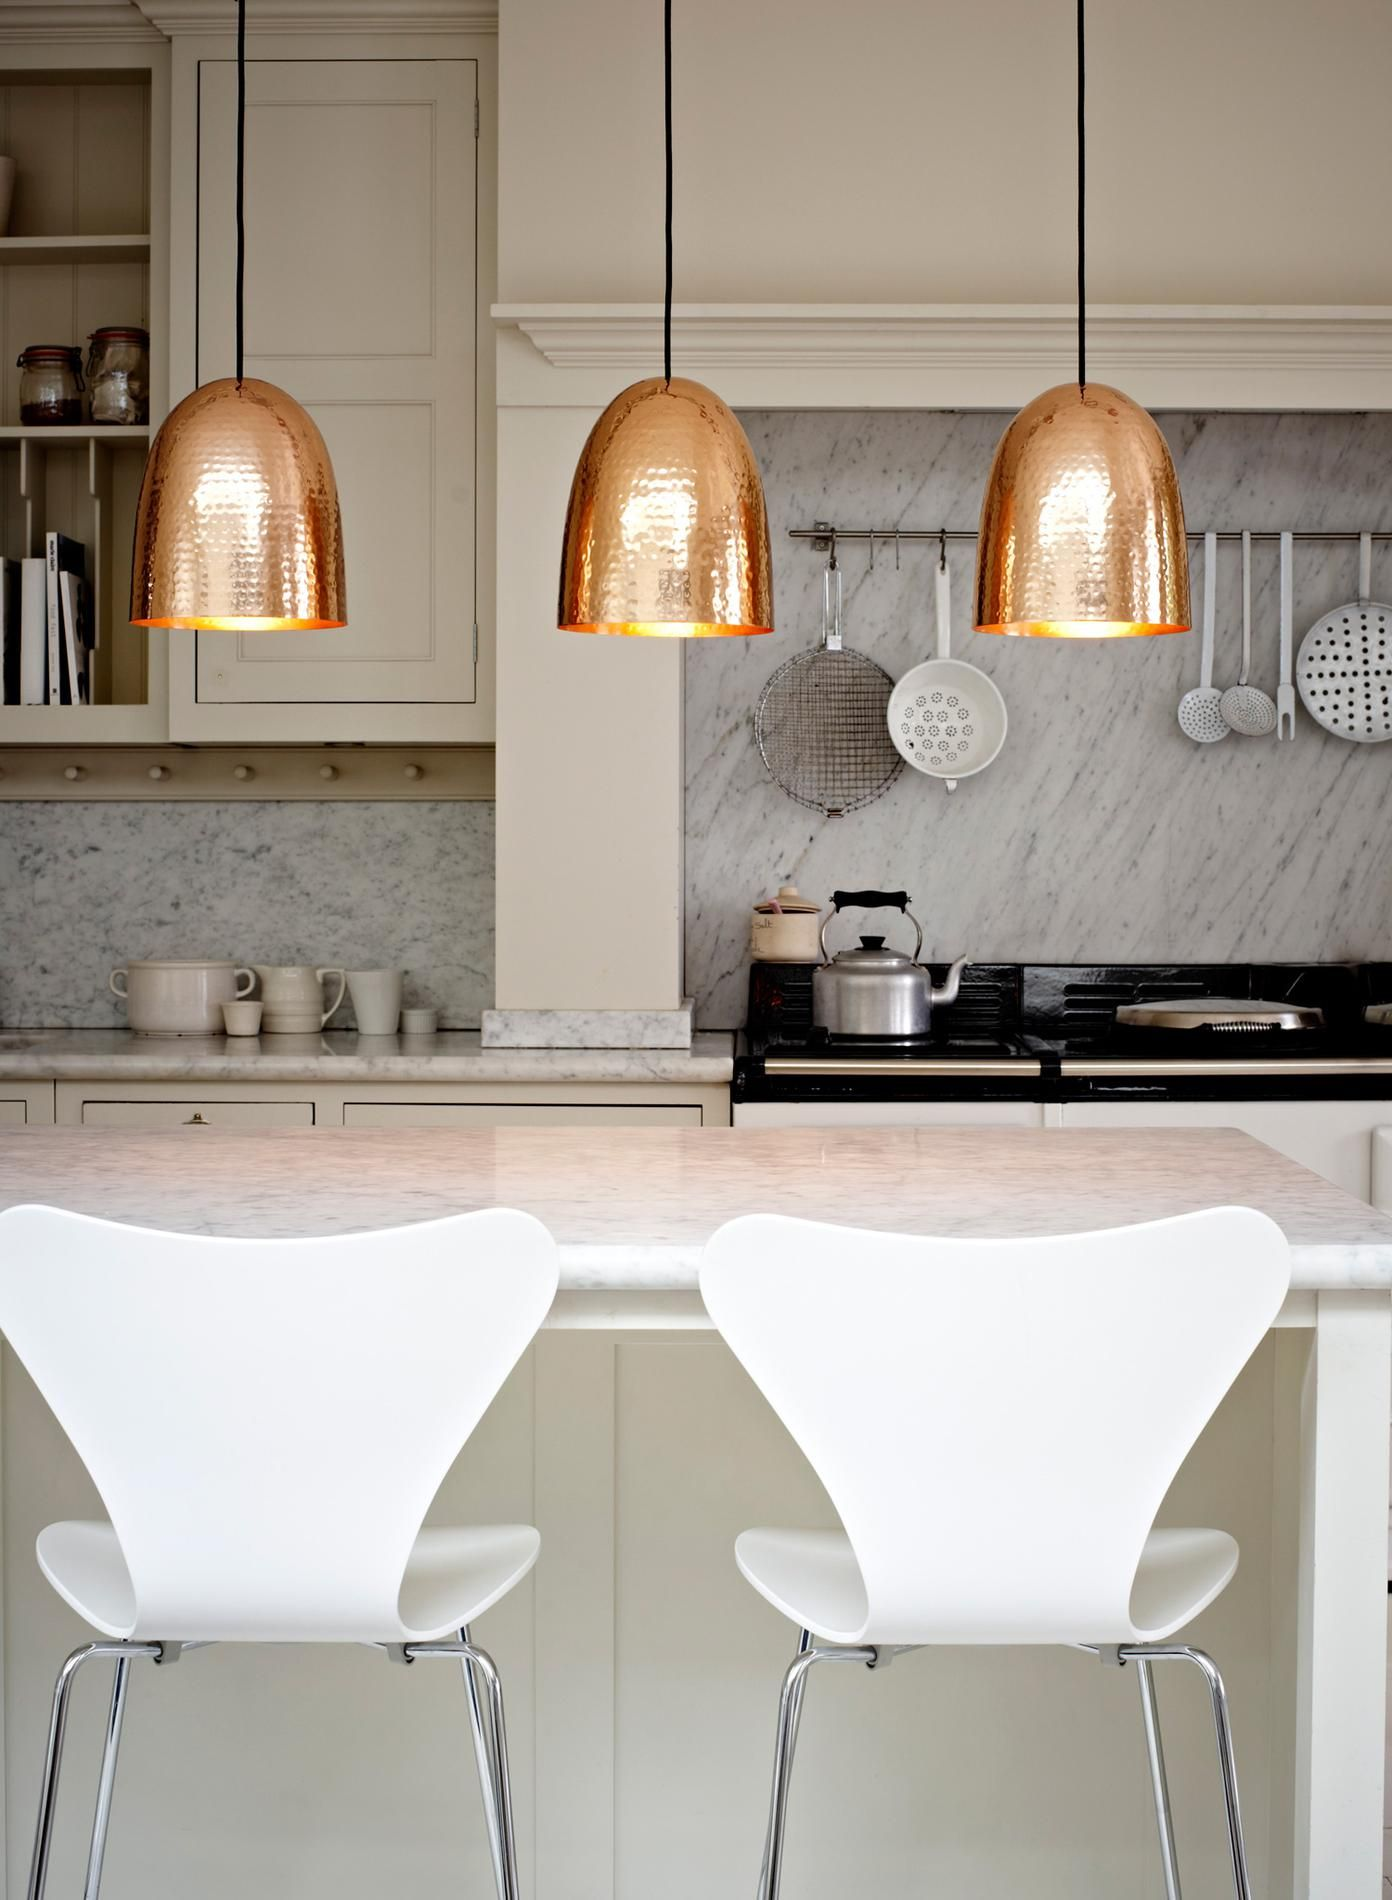 Examples Of Copper Pendant Lighting For Your Home - Pendant lighting in kitchen photos